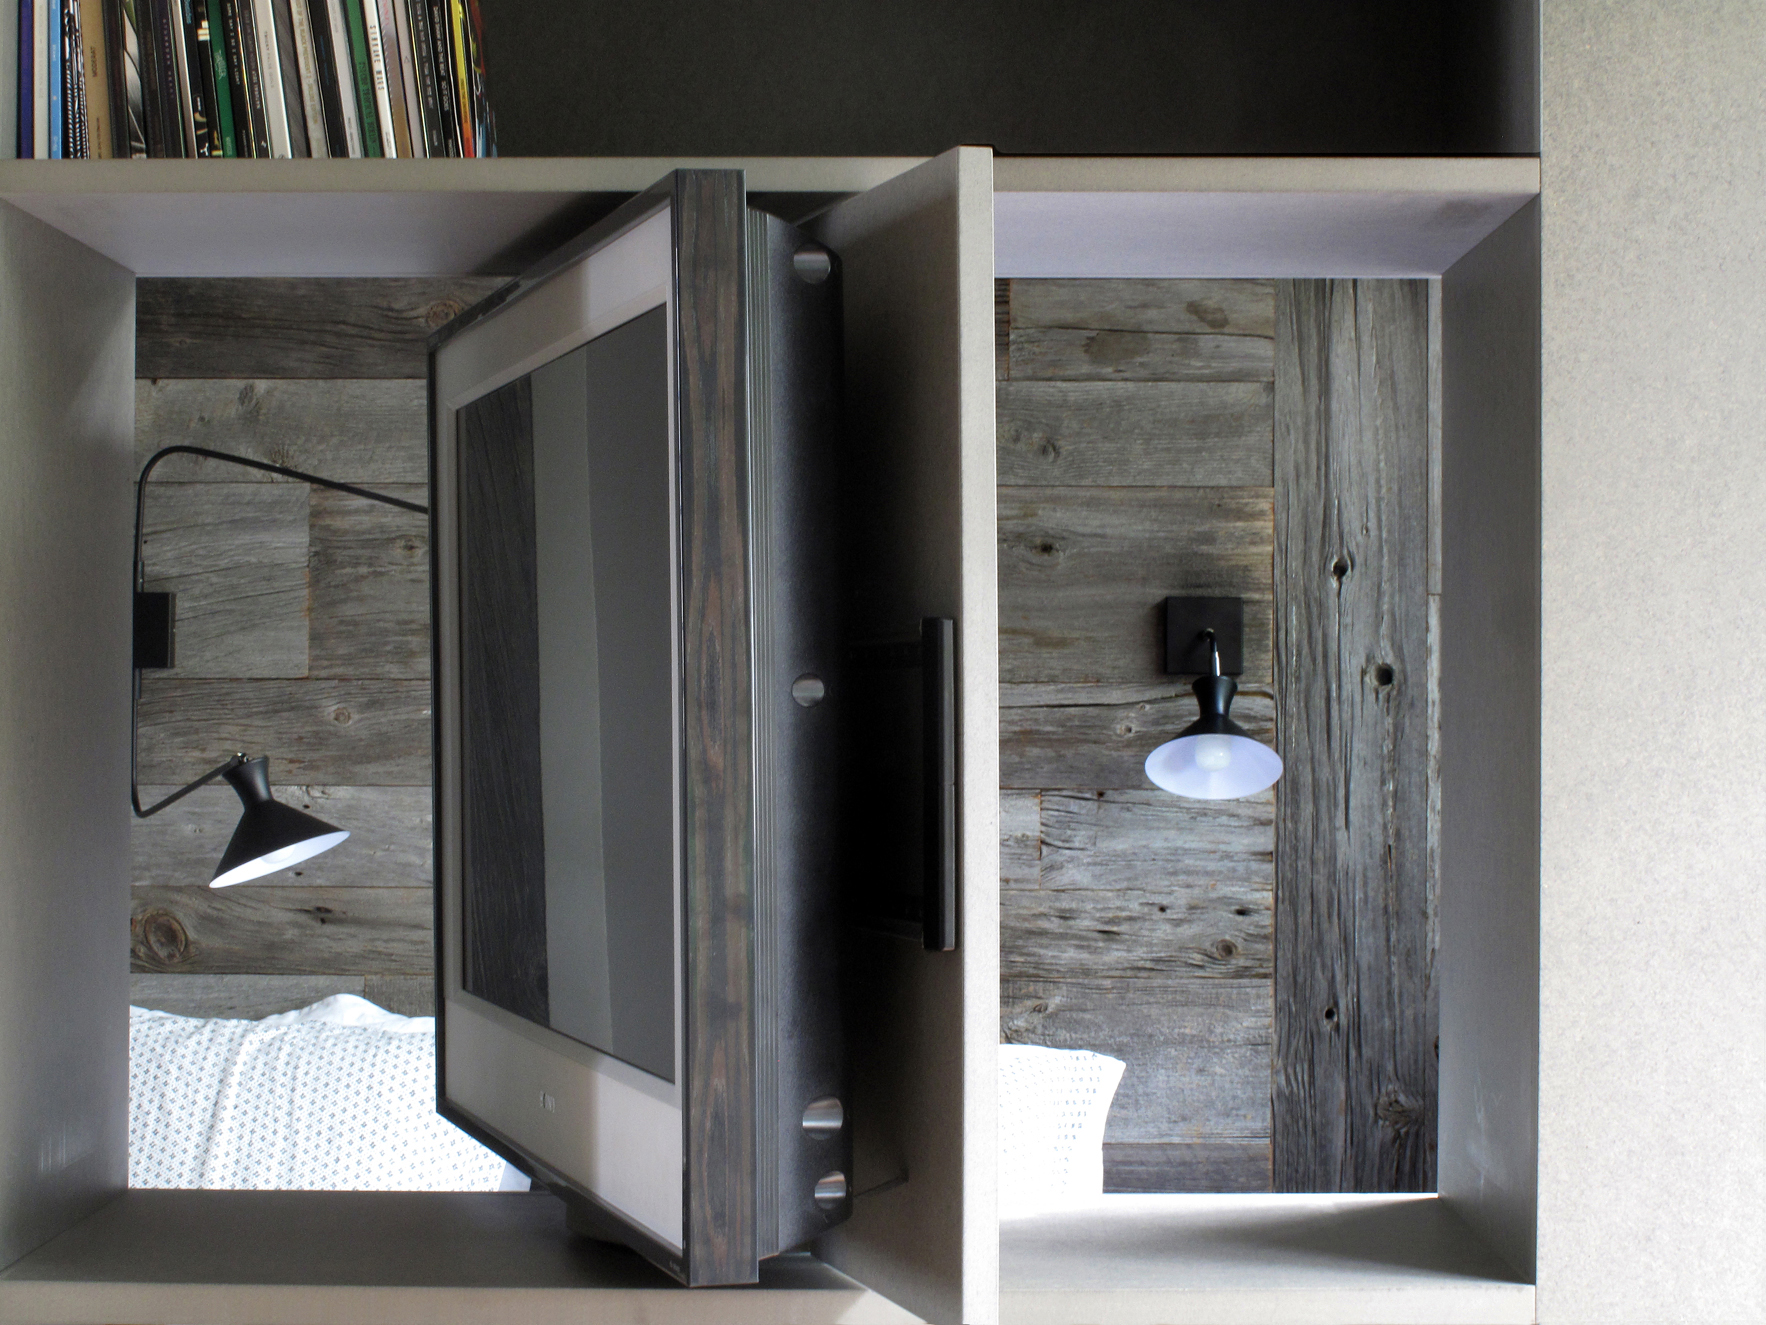 Gain de place arlinea architecture for Chambre a coucher une place